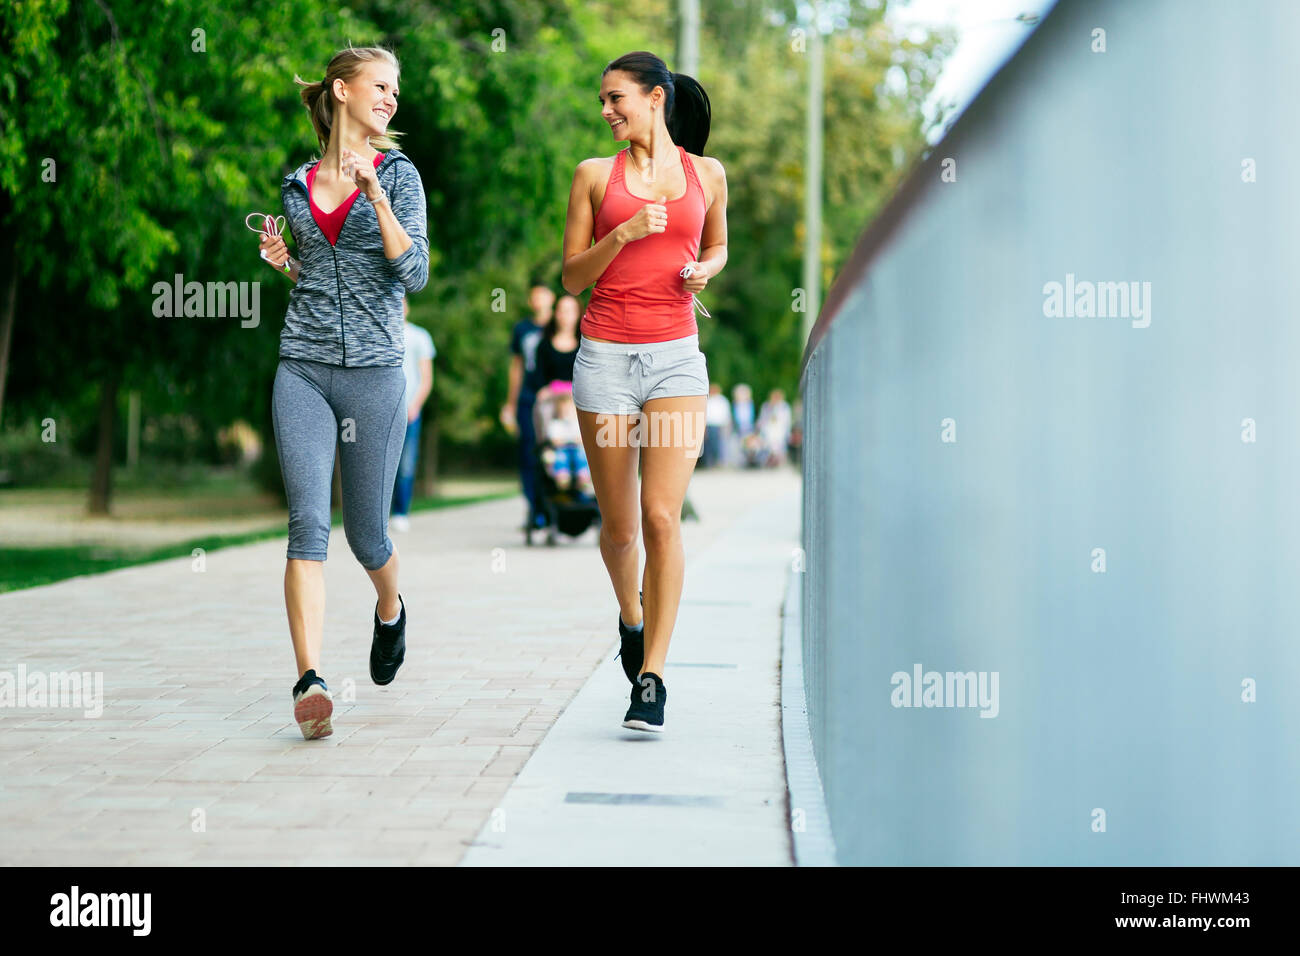 Two sporty women jogging in city while listening to music - Stock Image